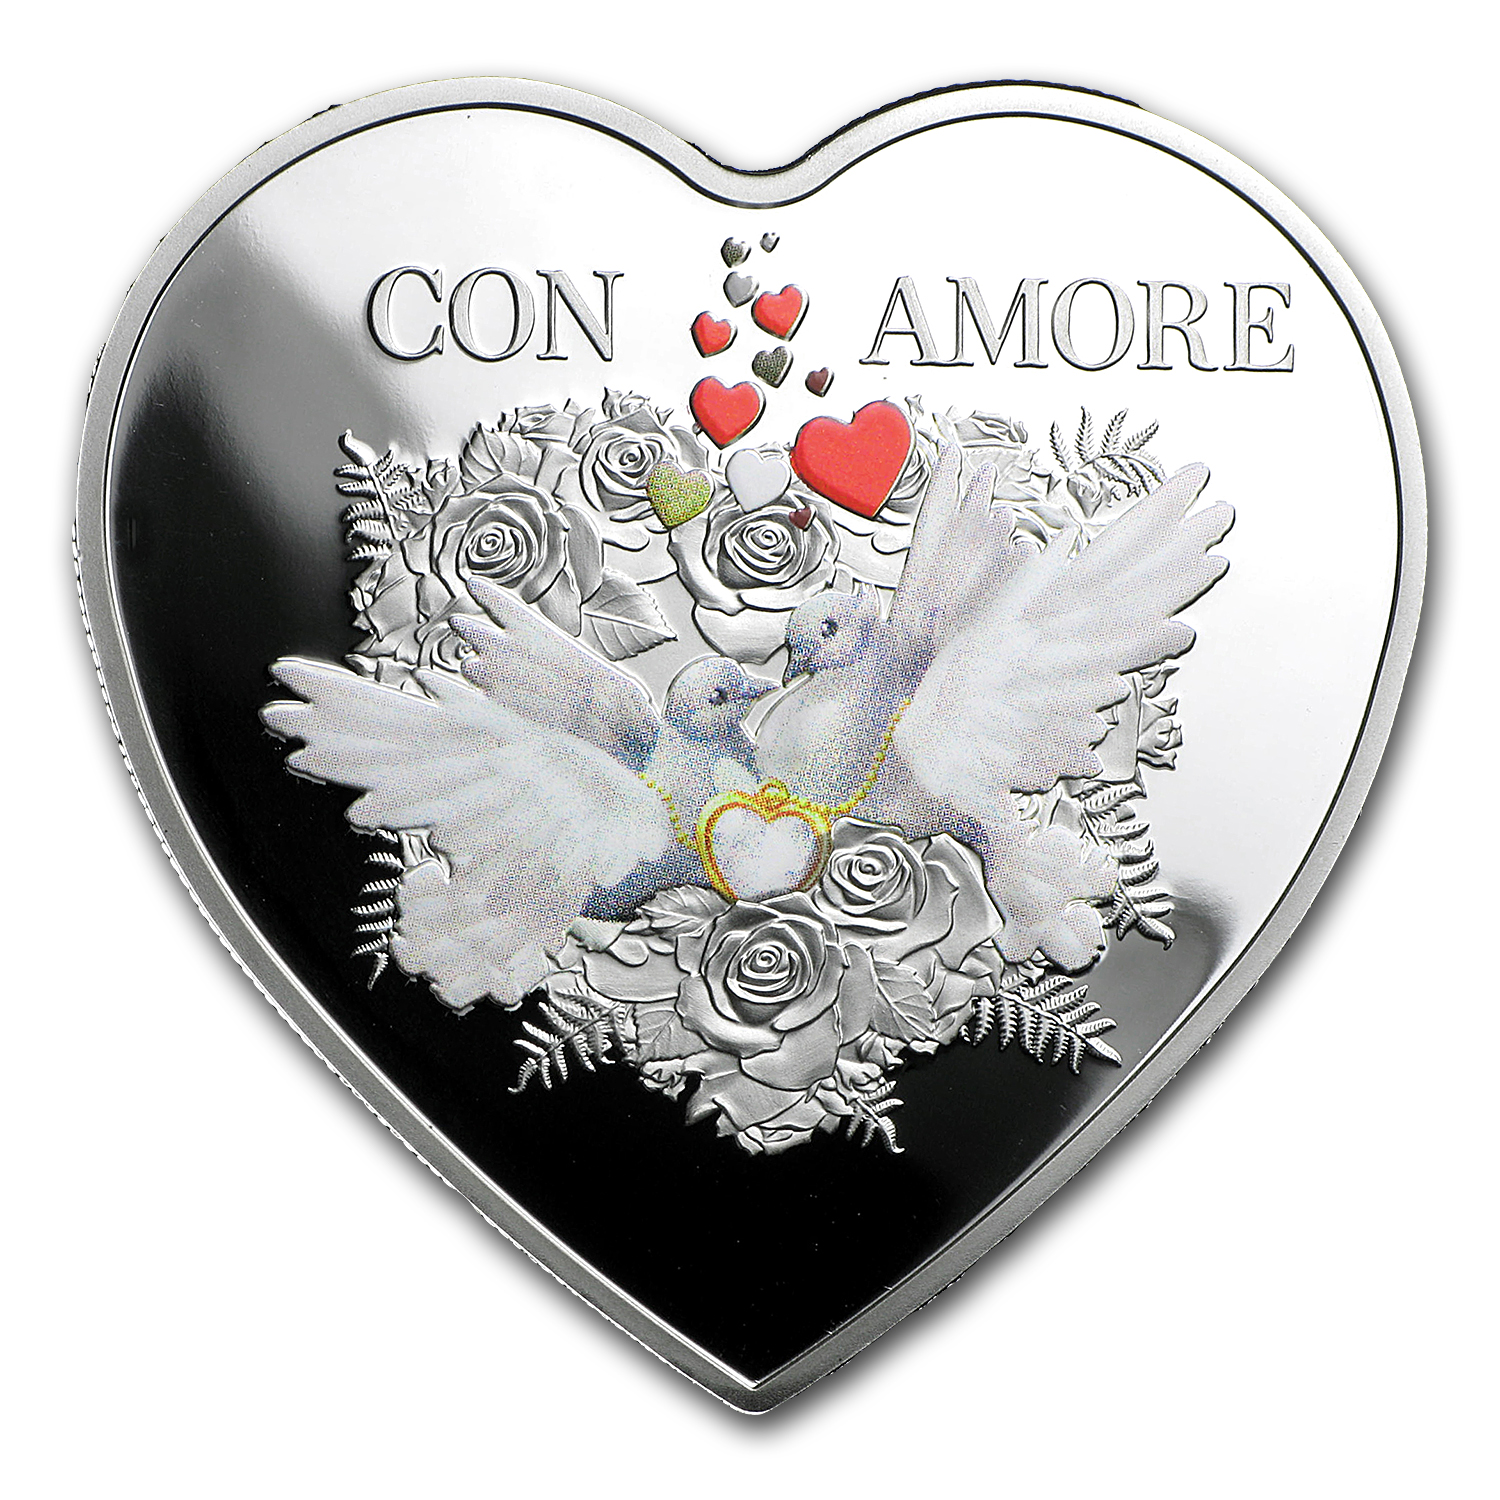 2016 Tokelau Proof 20 gram Silver Con Amore Heart Shaped Coin